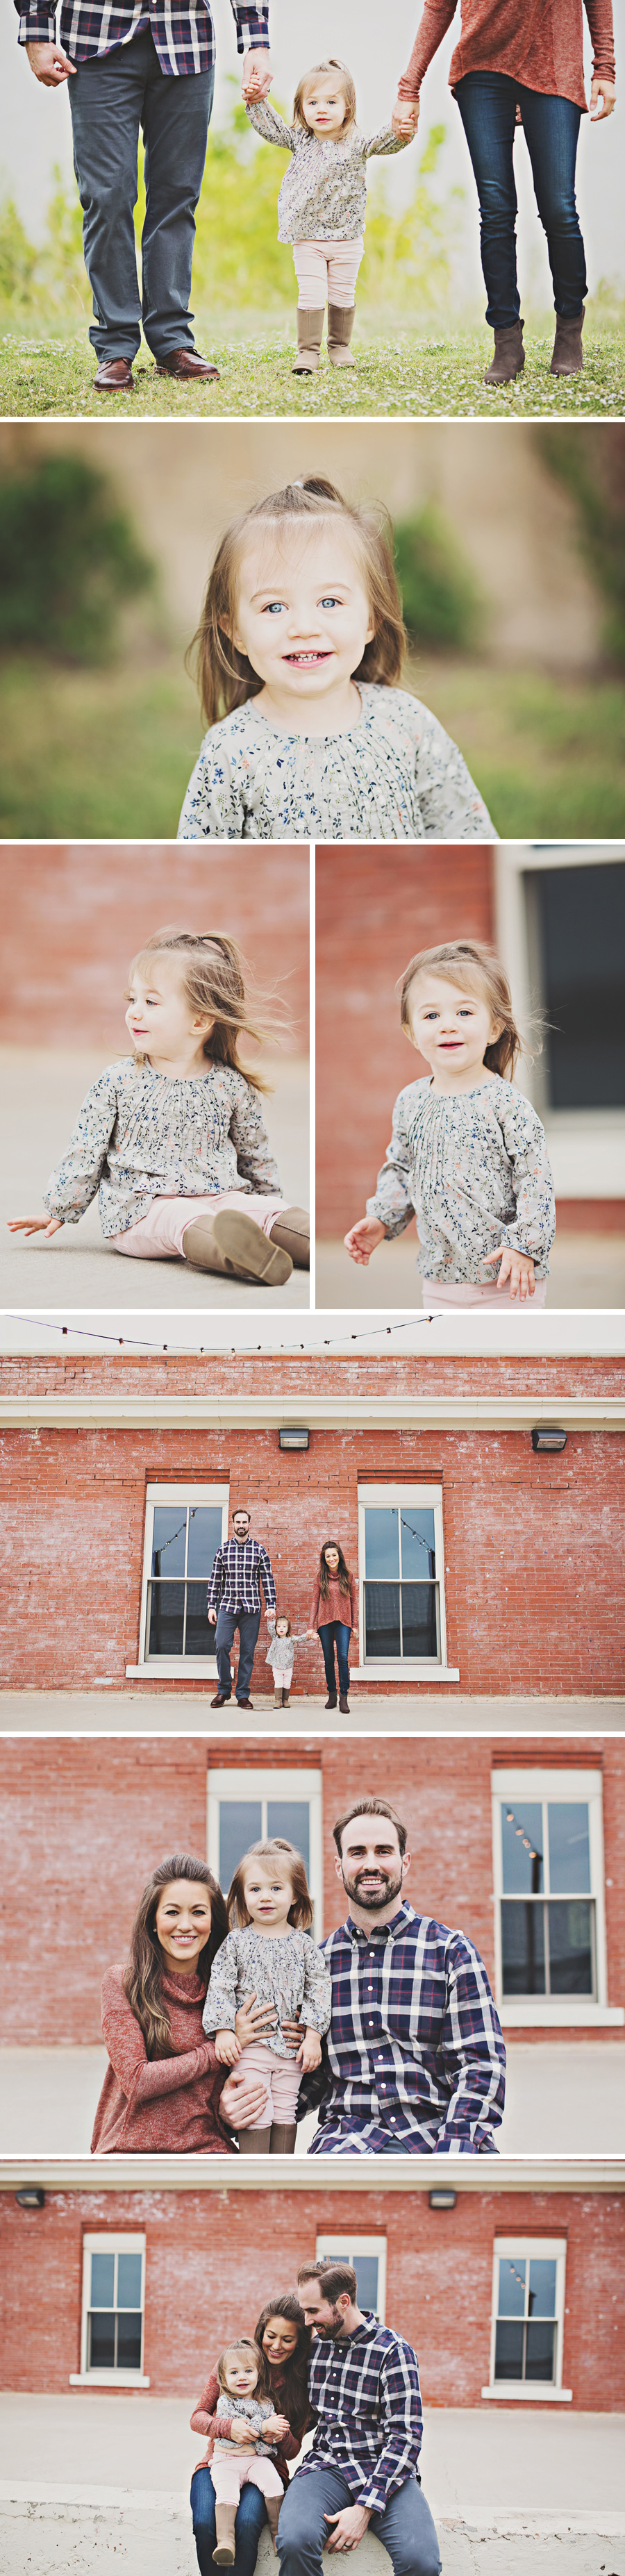 Dallas-Family-PhotographerG003